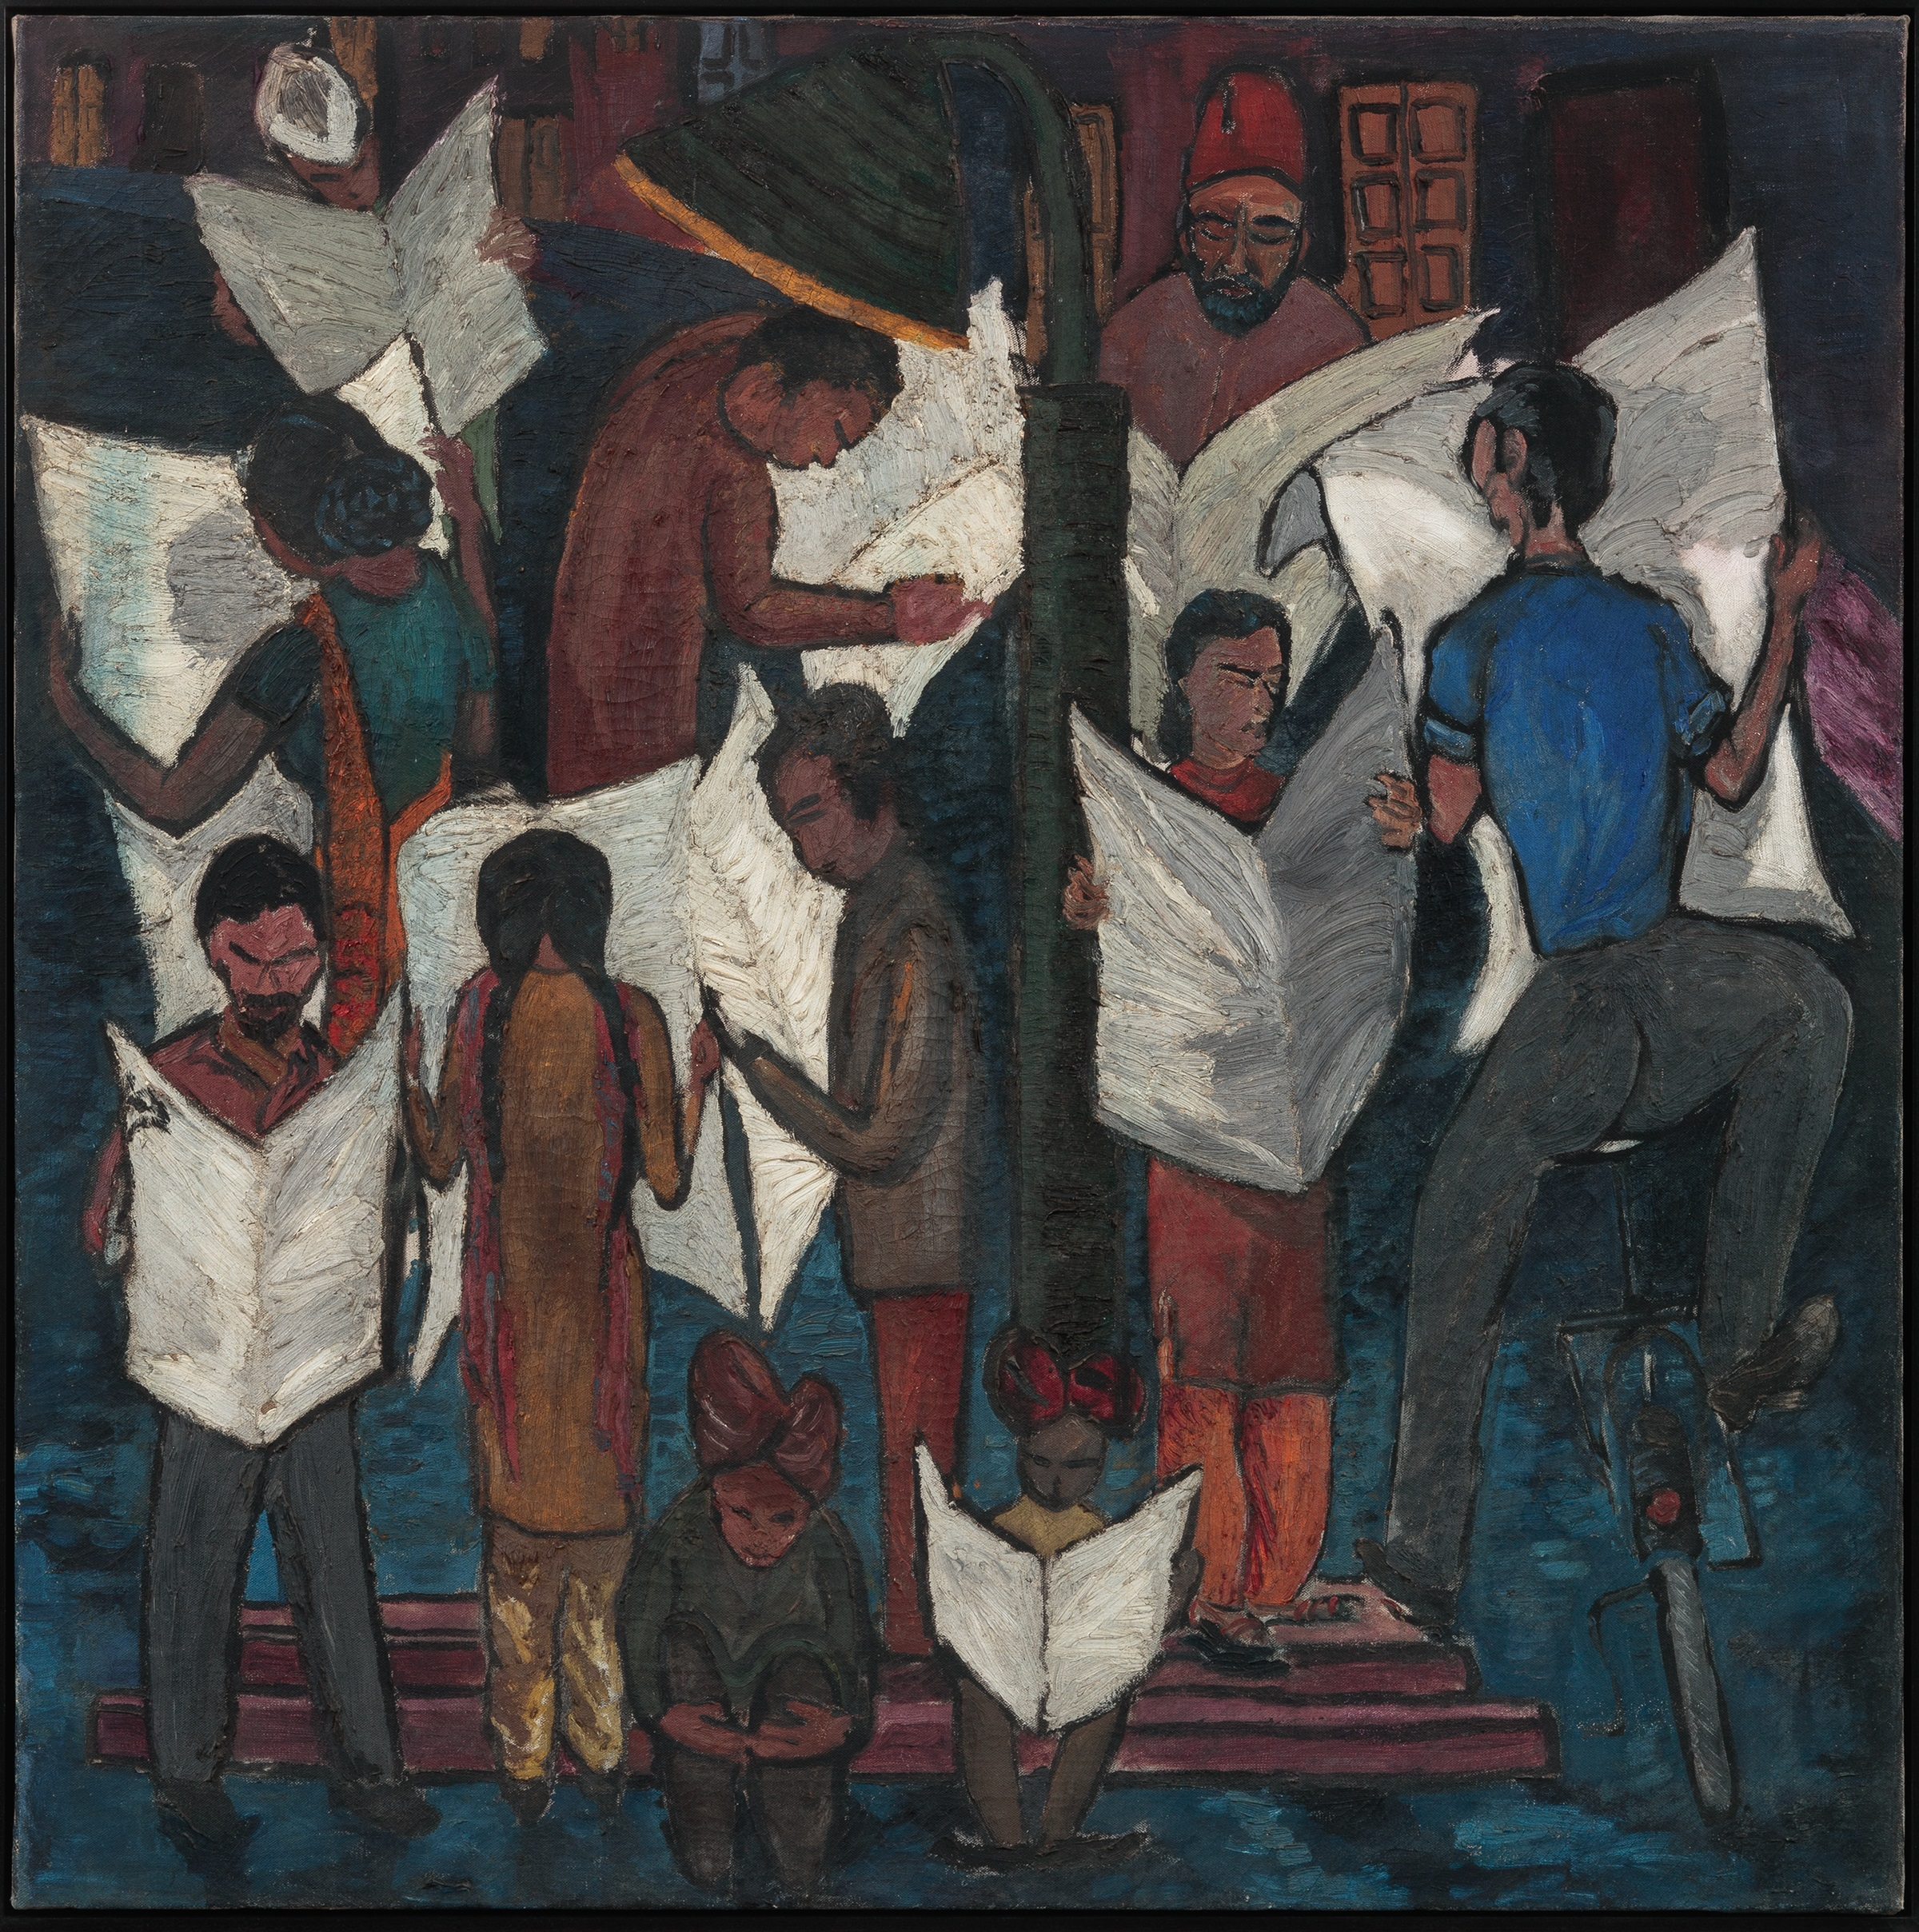 Krishen Khanna, News of Gandhiji's Death, 1948, Oil on canvas.  In 1948, Mahatma Gandhi was shot by right-wing religious extremists. Khanna's painting is a balancing act of horror and hope. Here, newspapers are clutched in the hands of people from the different faiths of India's population Muslims, Christians, and Hindus all gather in grief. As we step back from the painting we realise that the fragmented group comes together to form a map of the subcontinent. ZJ